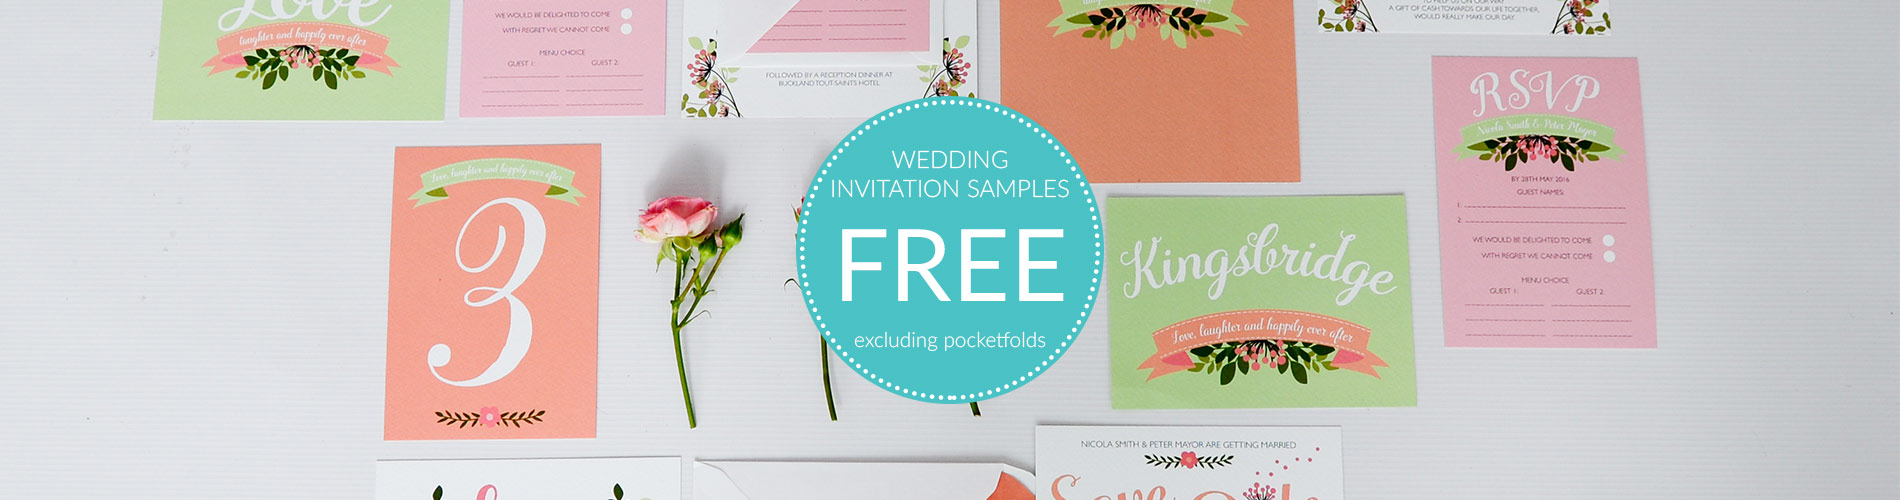 free wedding invitation samples free delivery